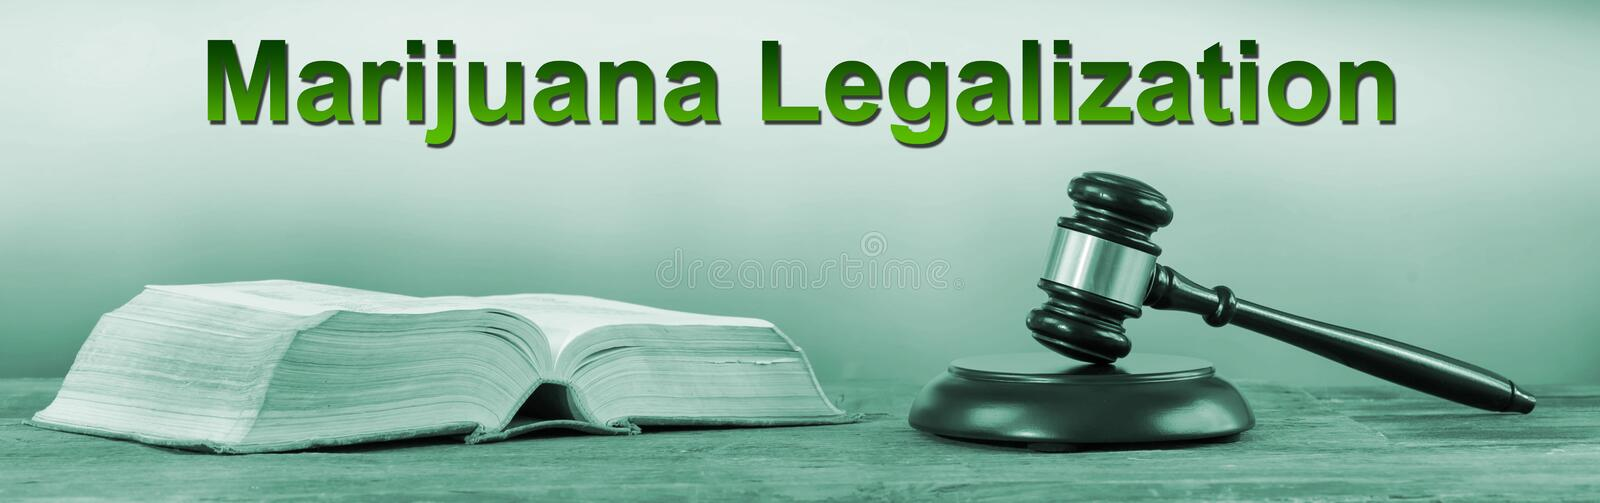 Concept of marijuana legalization. With judge hammer and law book royalty free stock photography